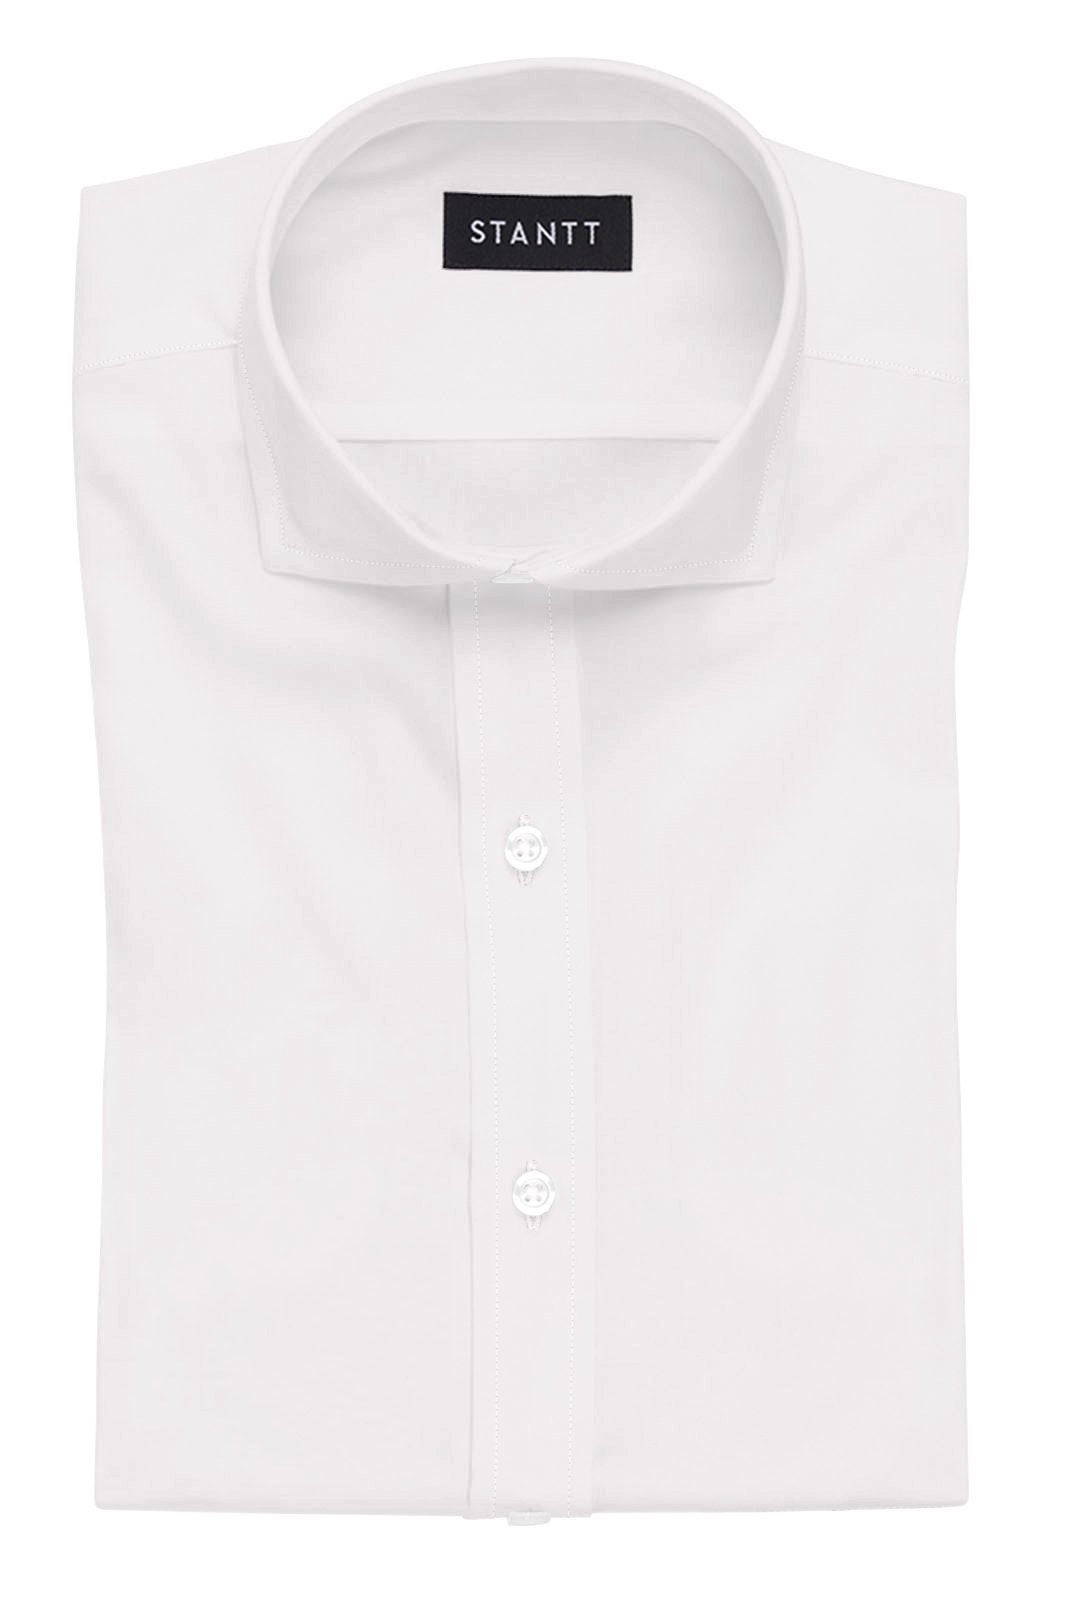 White Stretch: Cutaway Collar, Barrel Cuff